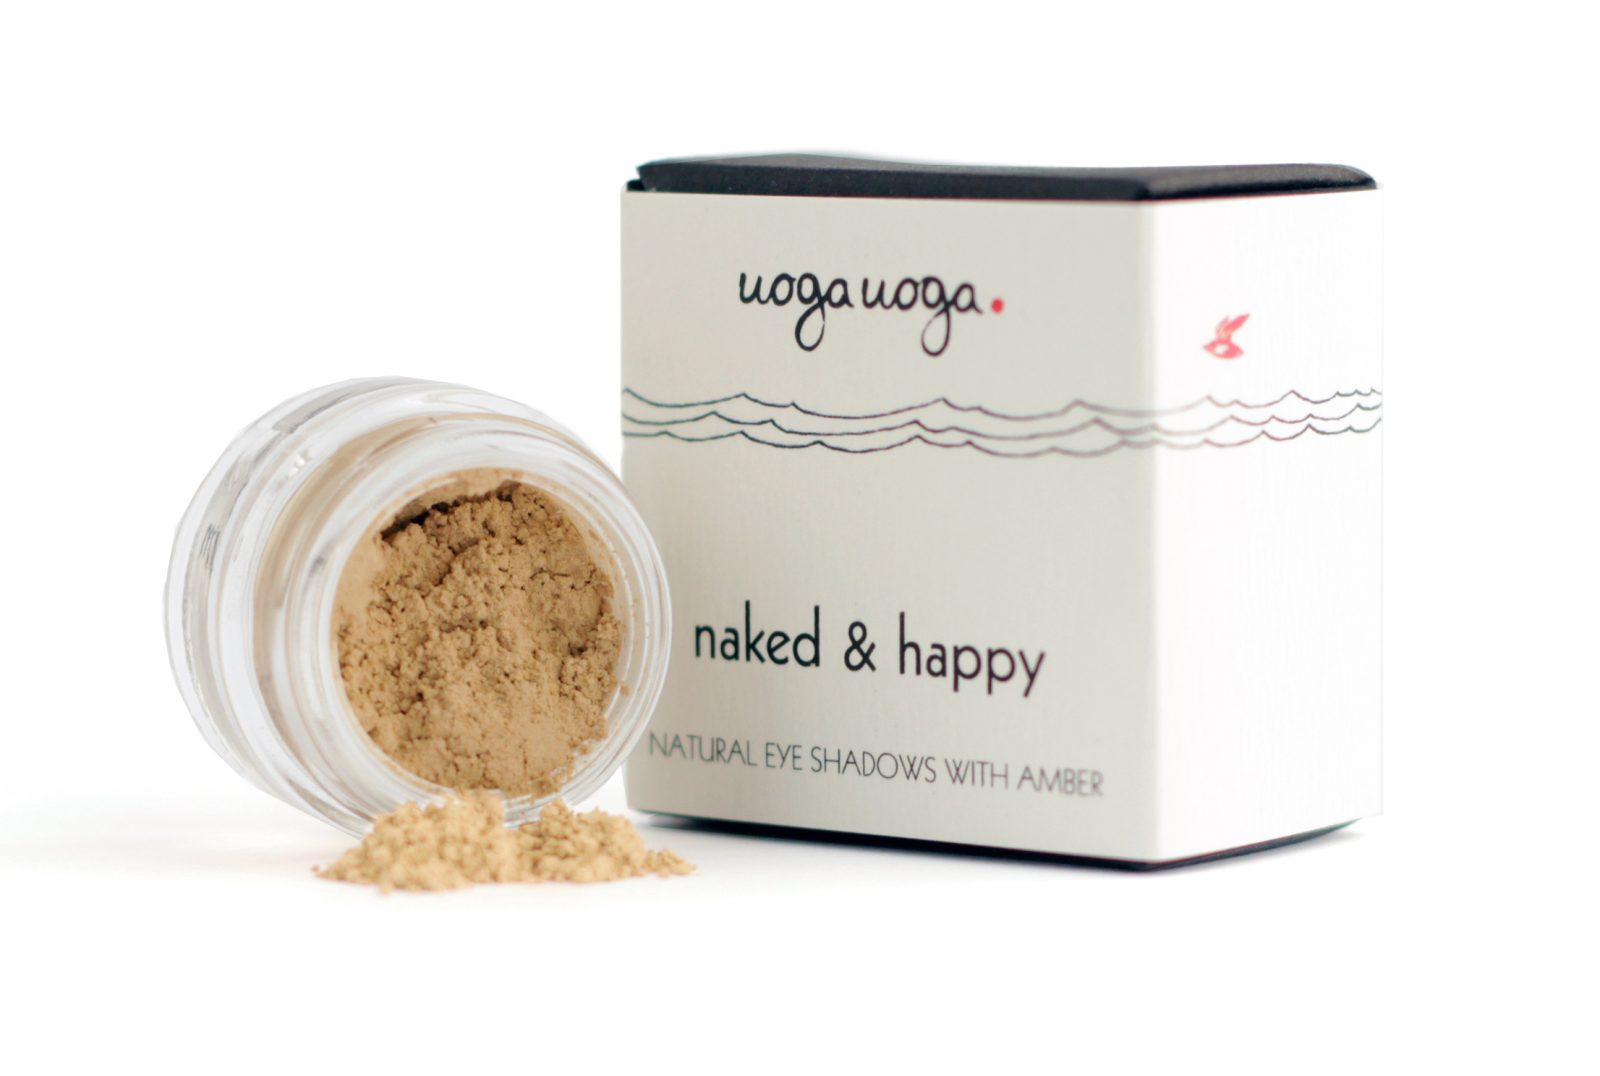 Uoga Uoga eyeshadow naked and happy